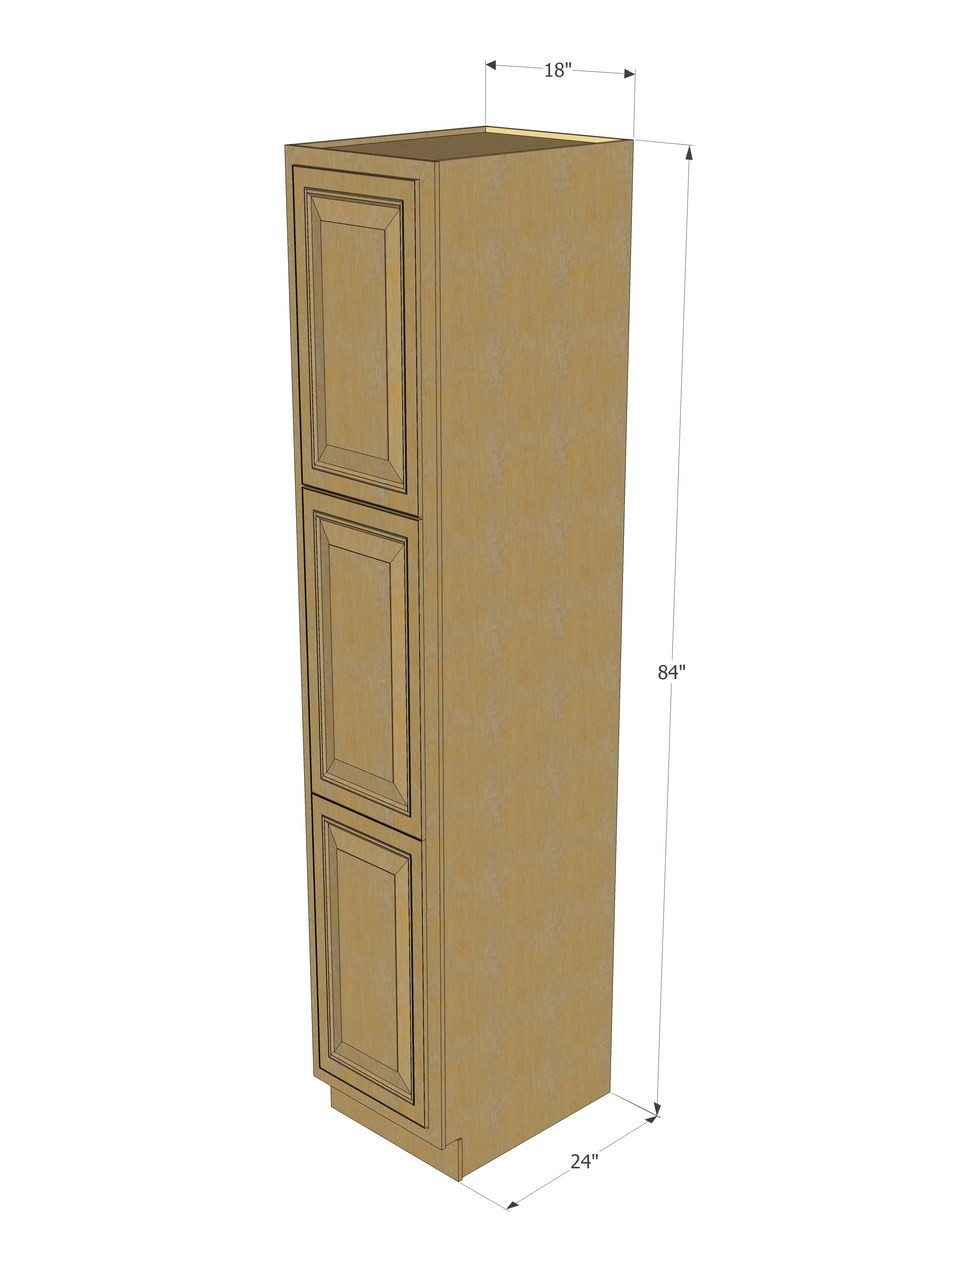 Regal Oak Pantry Cabinet Unit 18 Inch Wide X 84 Inch High